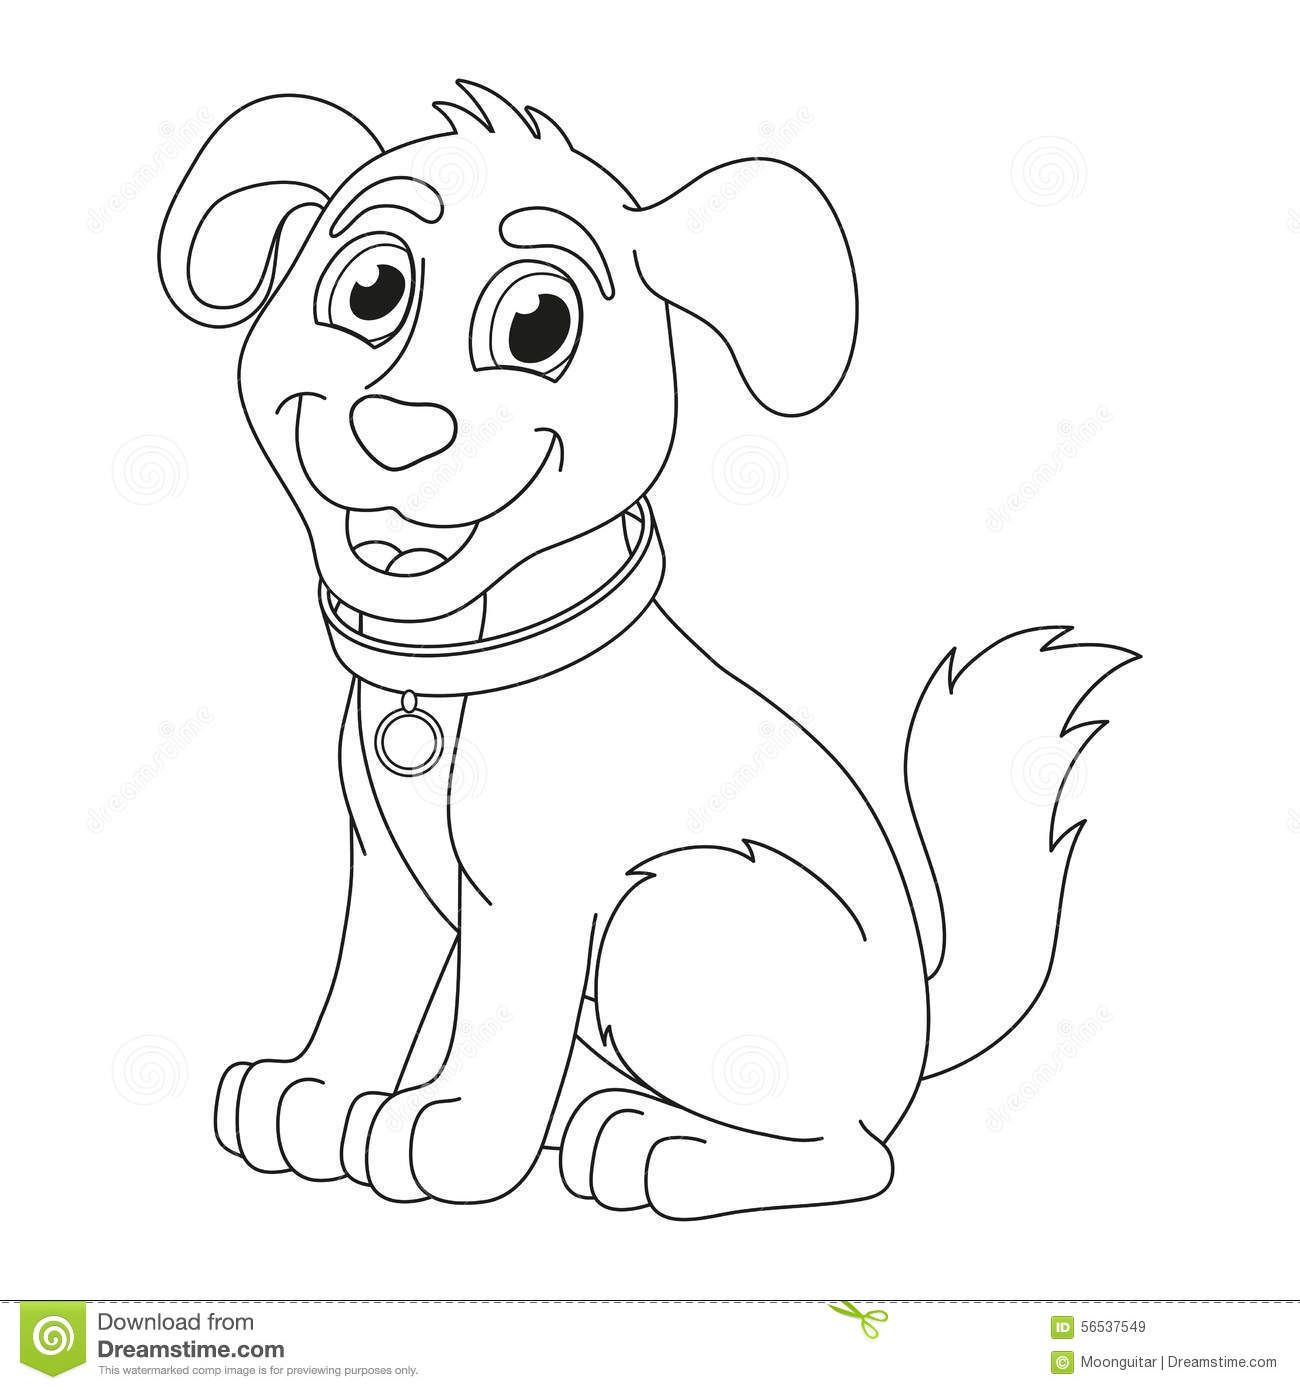 It is a graphic of Rare dog coloring pics